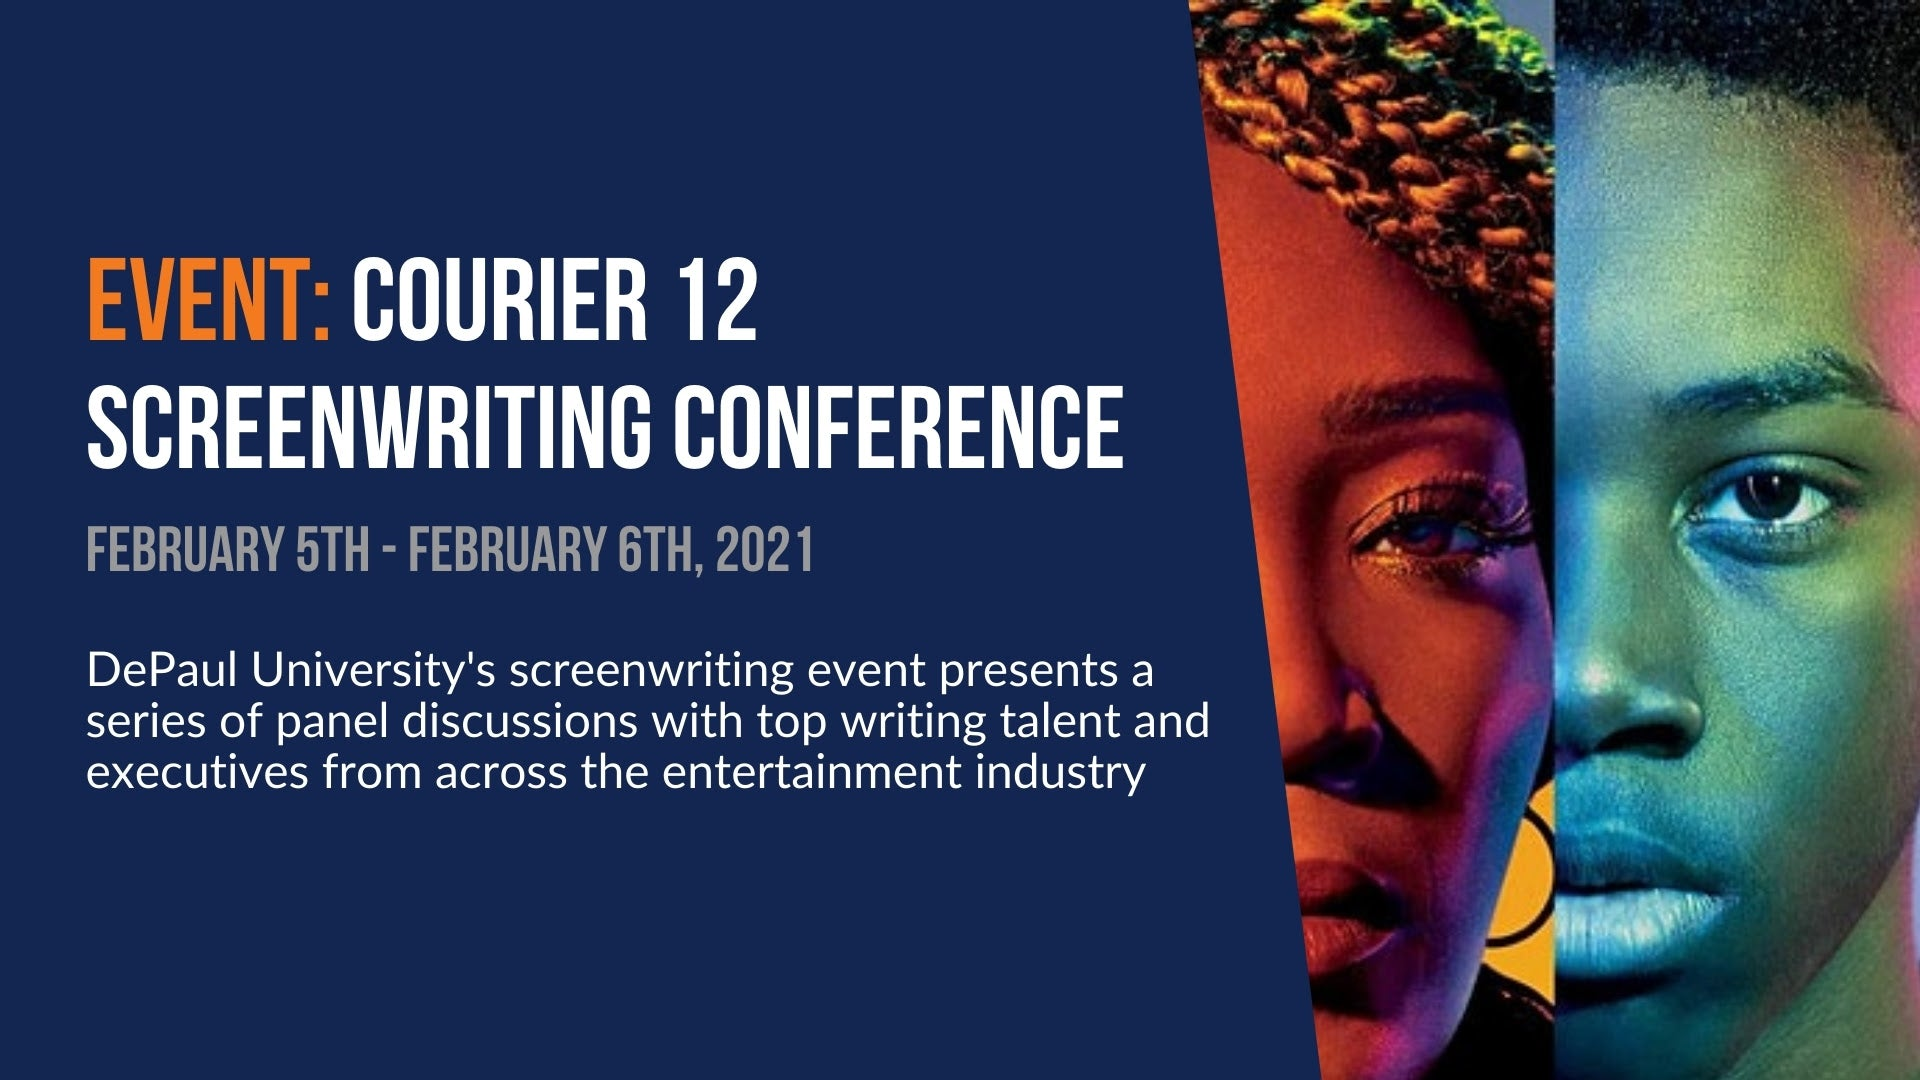 Event: Courier 12 Screenwriting Conference. February 5th - 6th, 2021. DePaul University's screenwriting event presents a series of panel discussions with top writing talent and executives from across the entertainment industry.